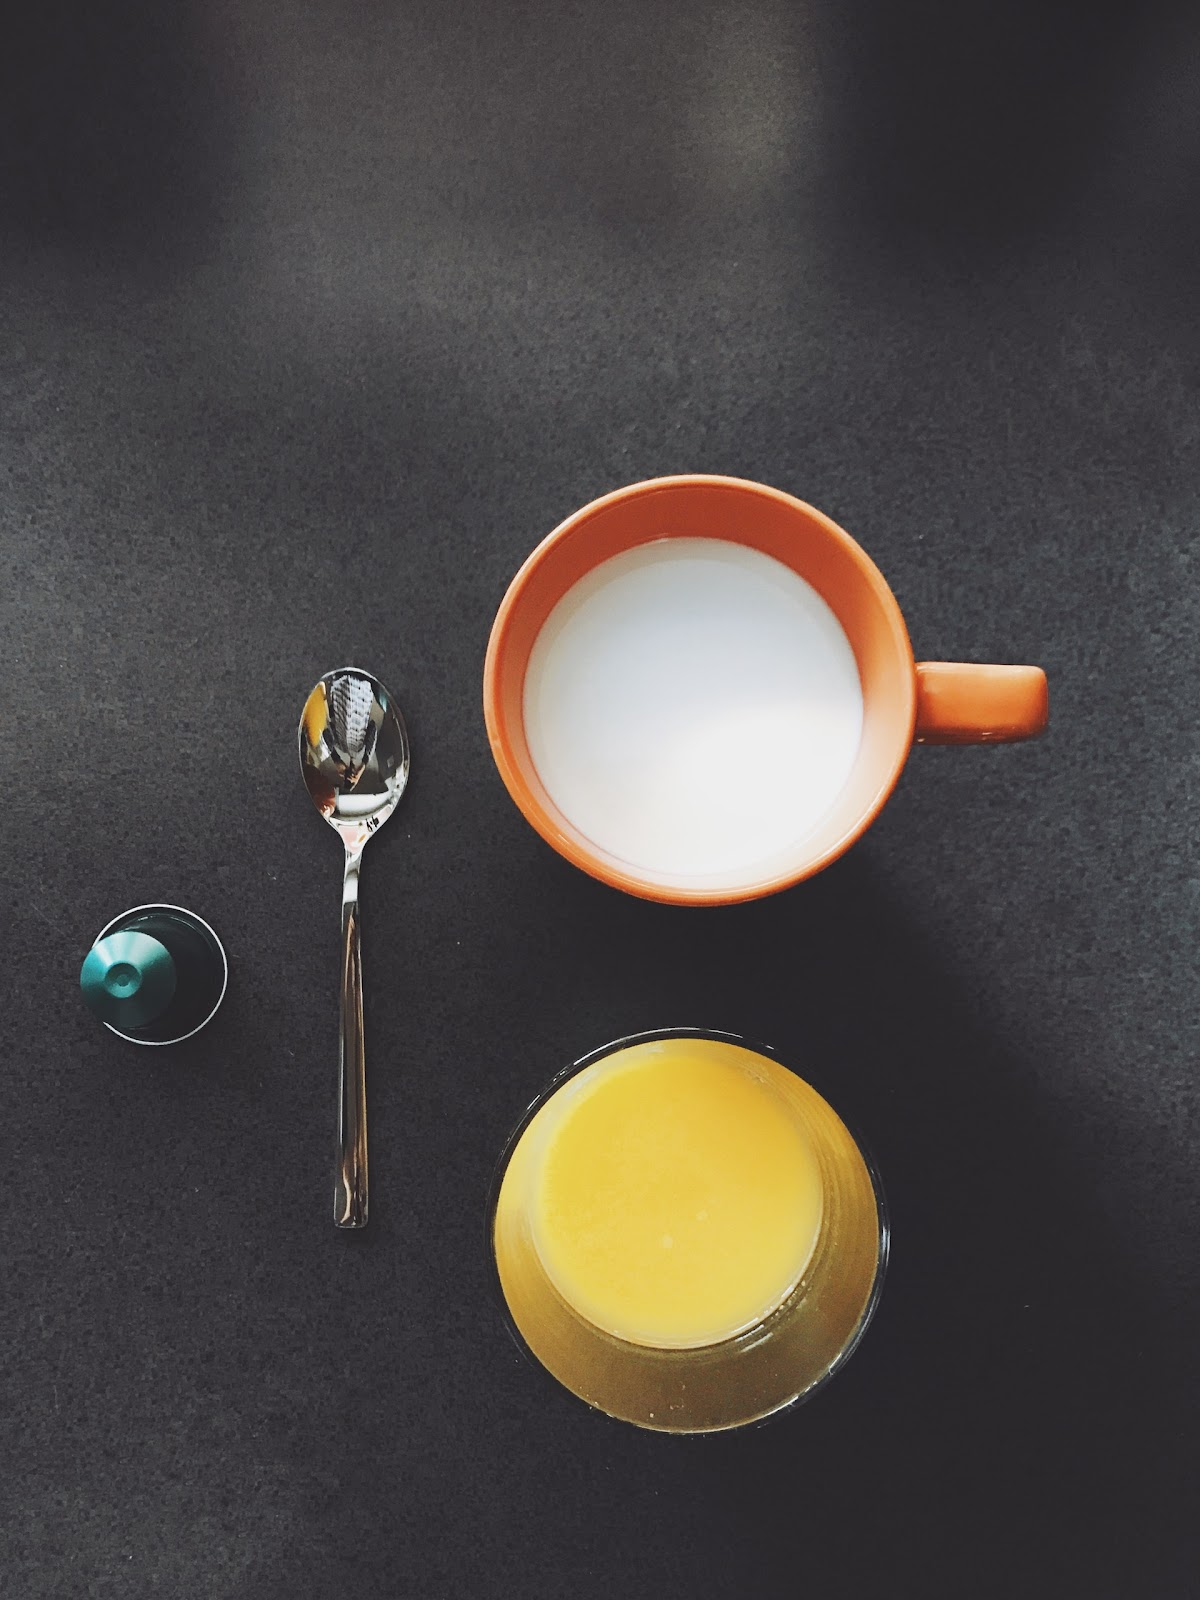 A glass of milk and a glass of juice sit on a table next to a spoon.